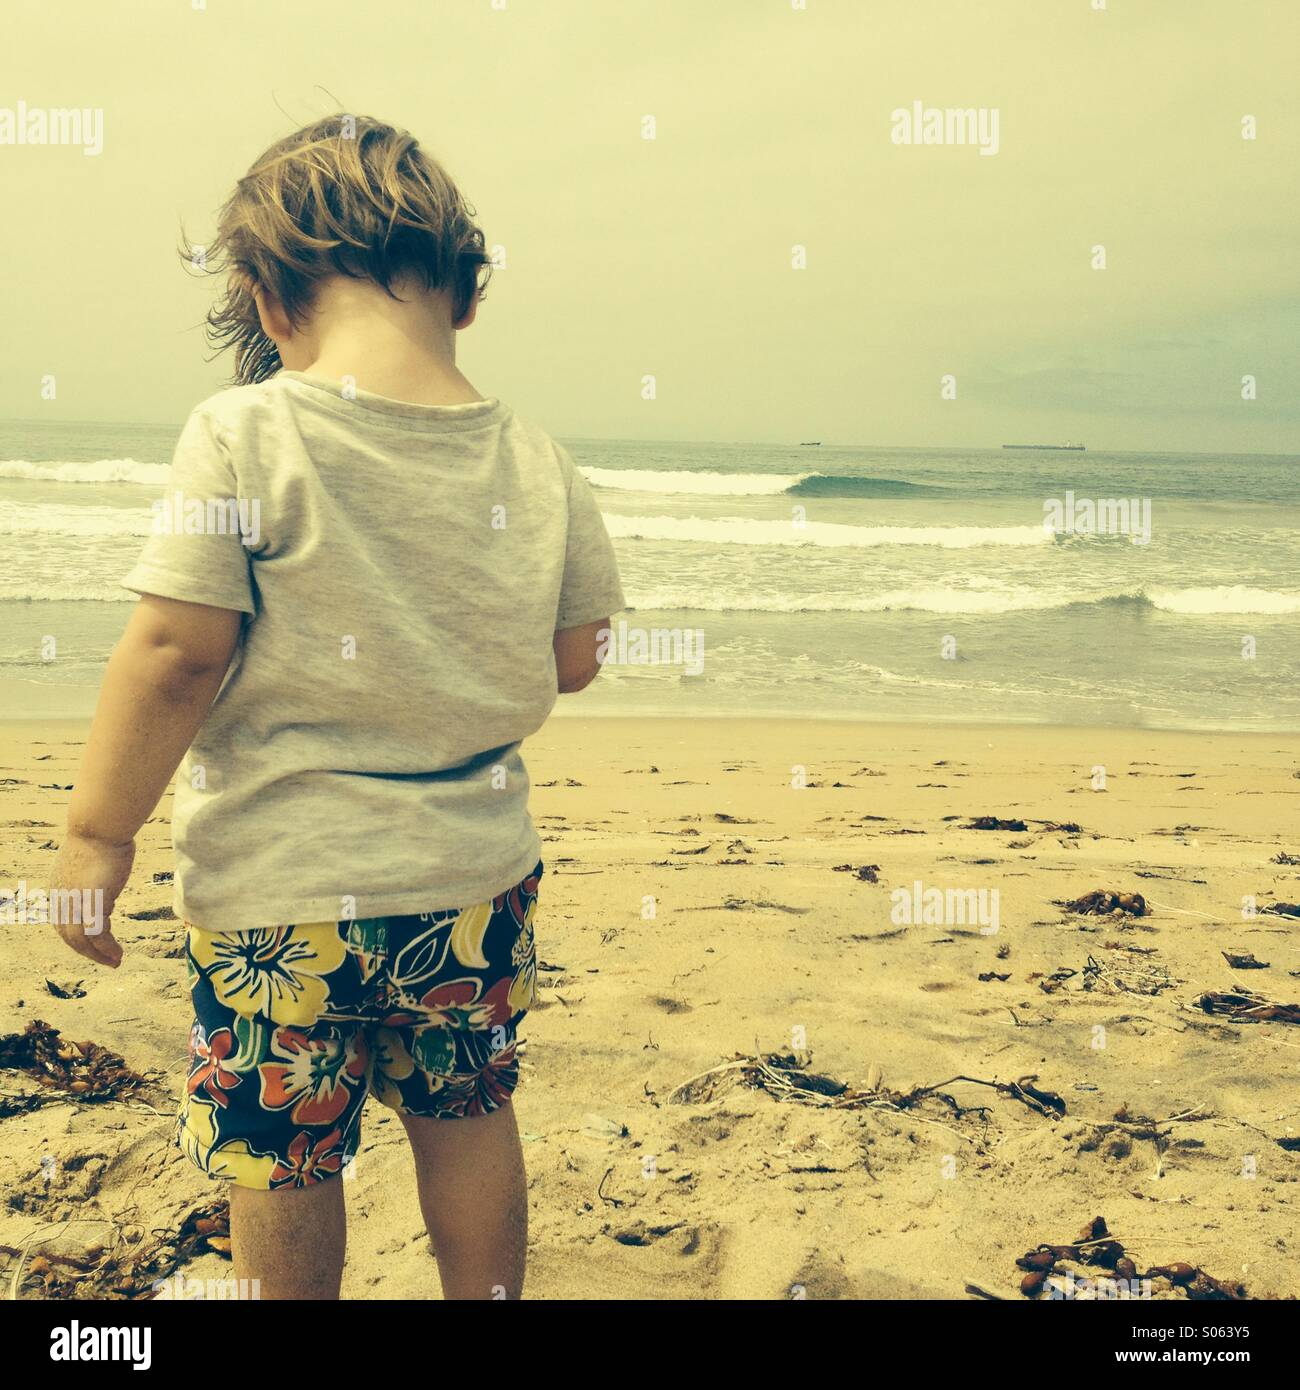 Little boy at the beach. - Stock Image